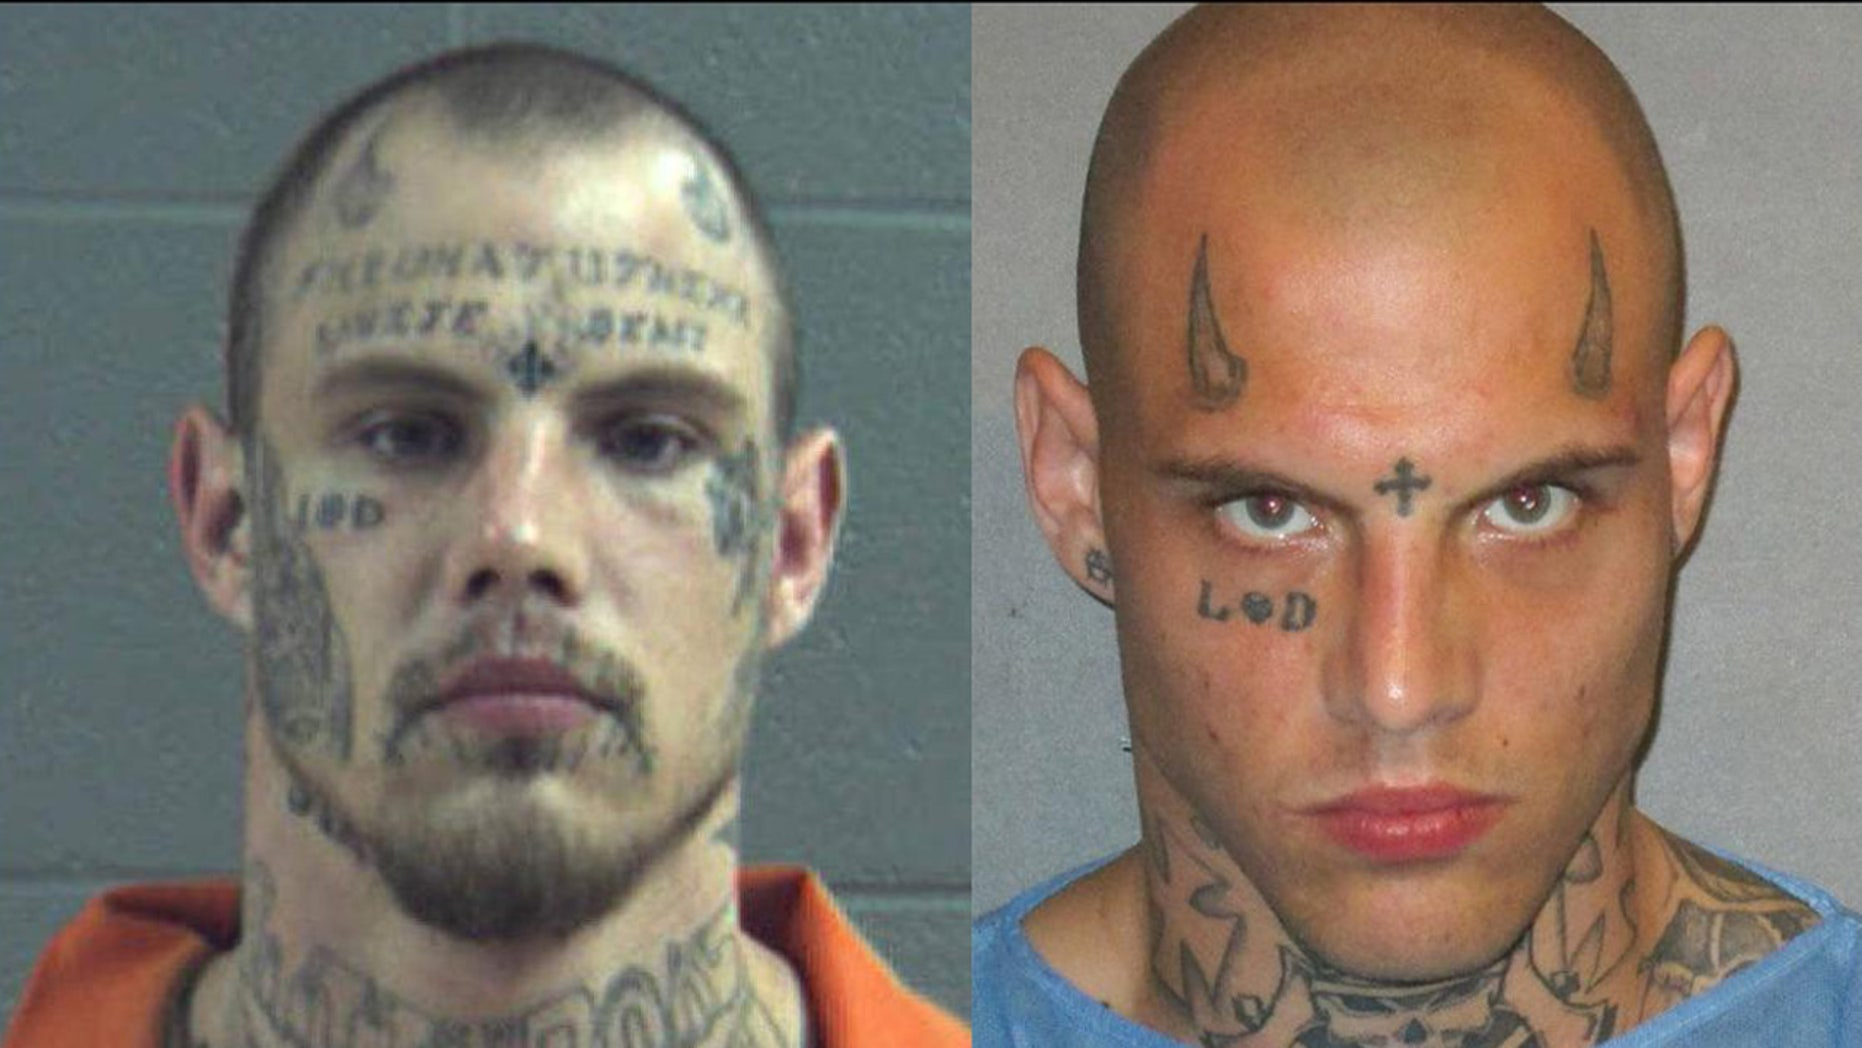 Westlake Legal Group twin-mugs Tattooed twins, 29, each faced trouble with the law until one was killed by police fox-news/us/us-regions/southeast/mississippi fox-news/us/us-regions/southeast/louisiana fox-news/us/crime/homicide fox-news/us/crime fox news fnc/us fnc Danielle Wallace article 89556eff-29c6-5ccb-bedf-a7a7882a2ef2